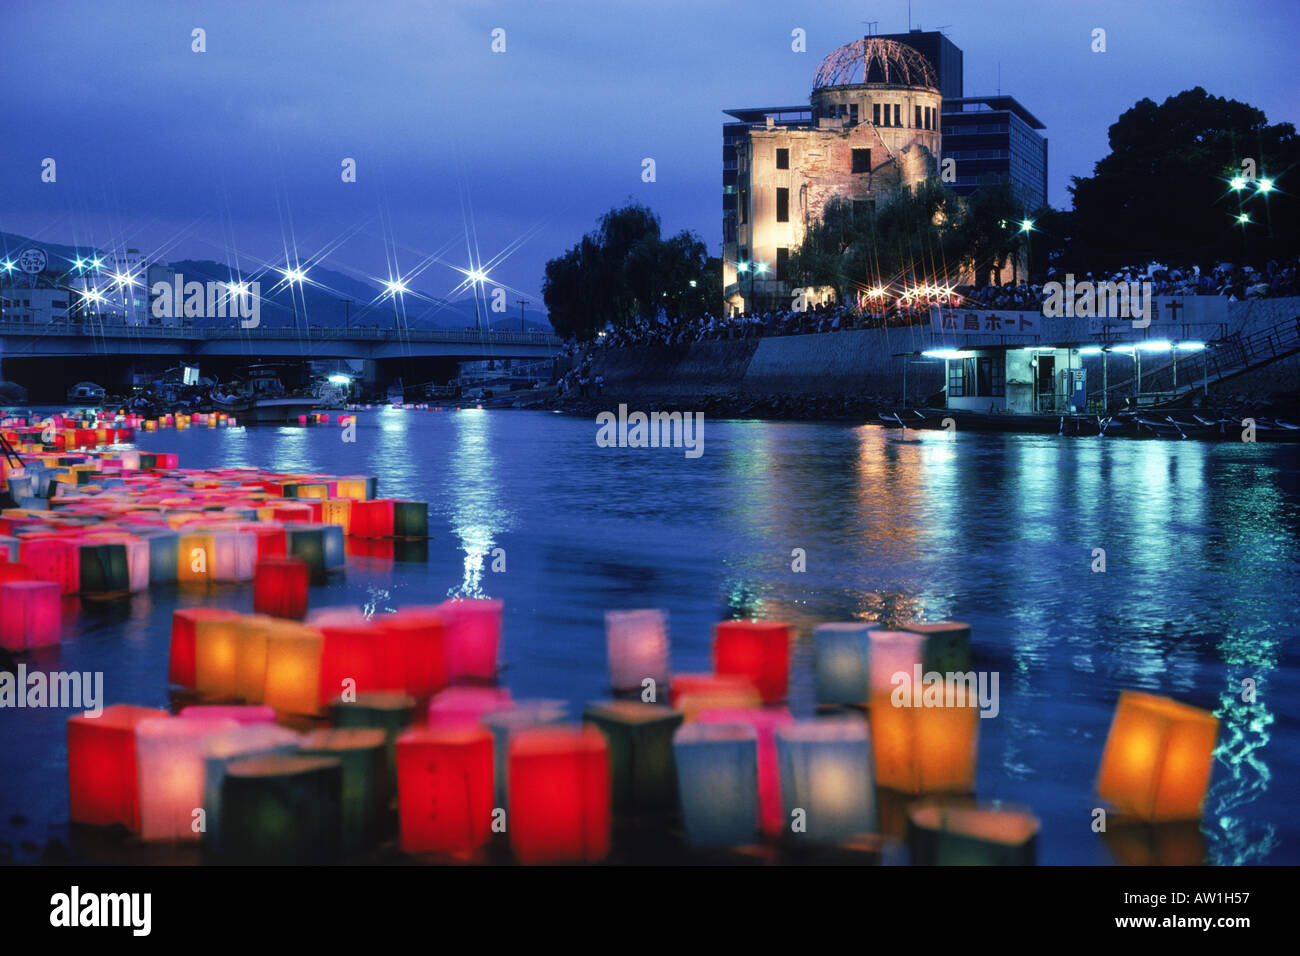 Atomic Bomb Dome with floating lamps on Motoyasu-gawa River during Peace Memorial Ceremony every August 6 in Hiroshima, Japan - Stock Image